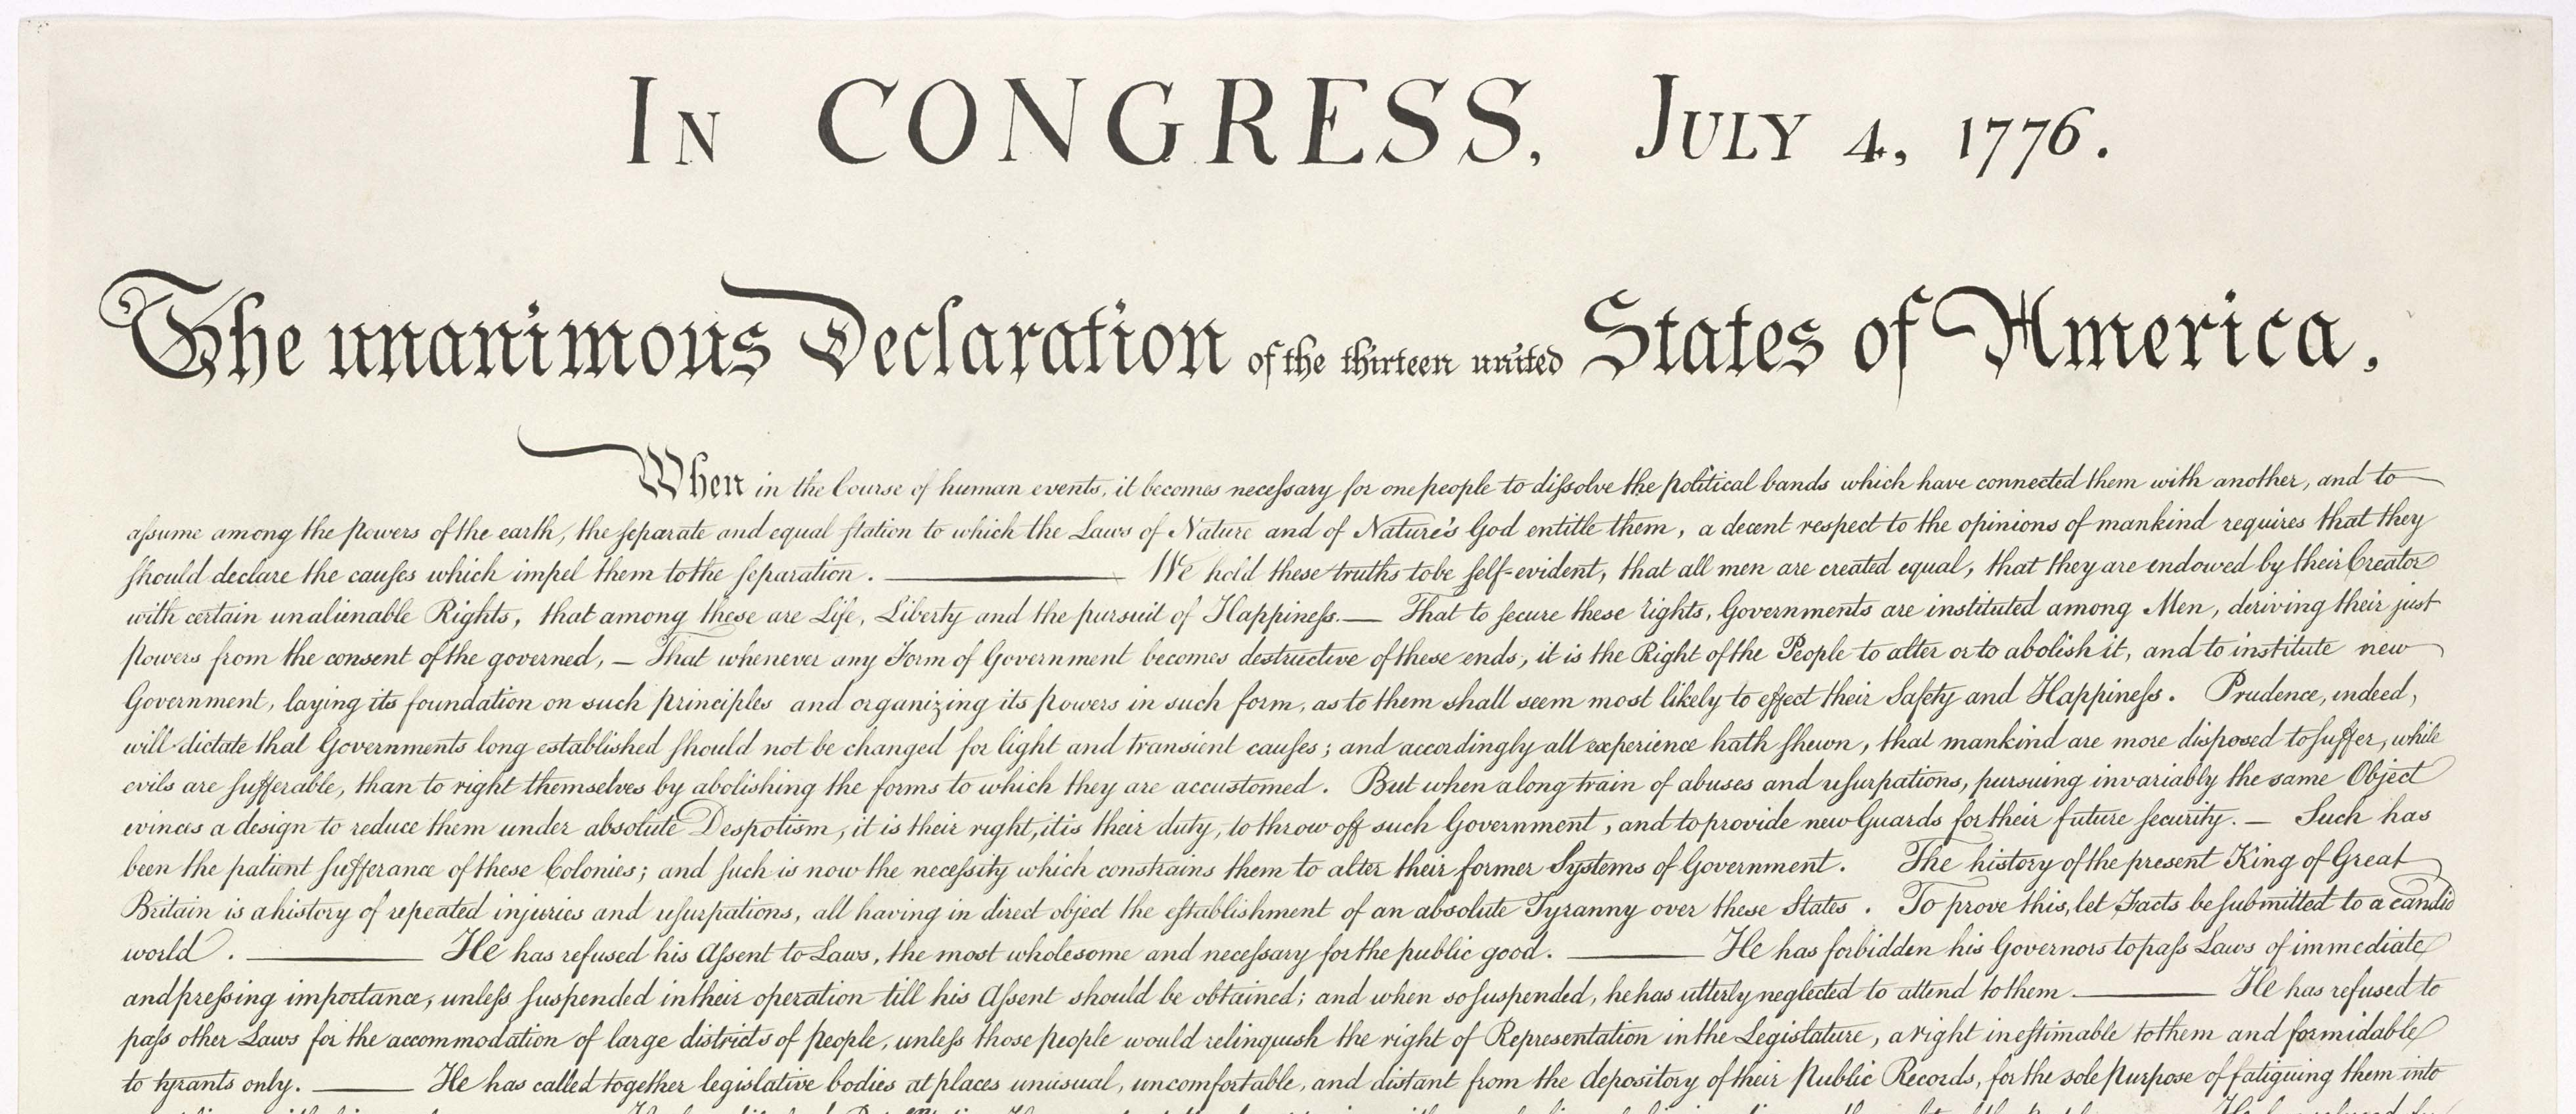 united states declaration of independence 4 essay Declaration of independence importance essaysthe declaration of independence, signed on july 4th 1776, is one of the most important documents in american history it helped to define america's values and its freedom, as it still stands today.